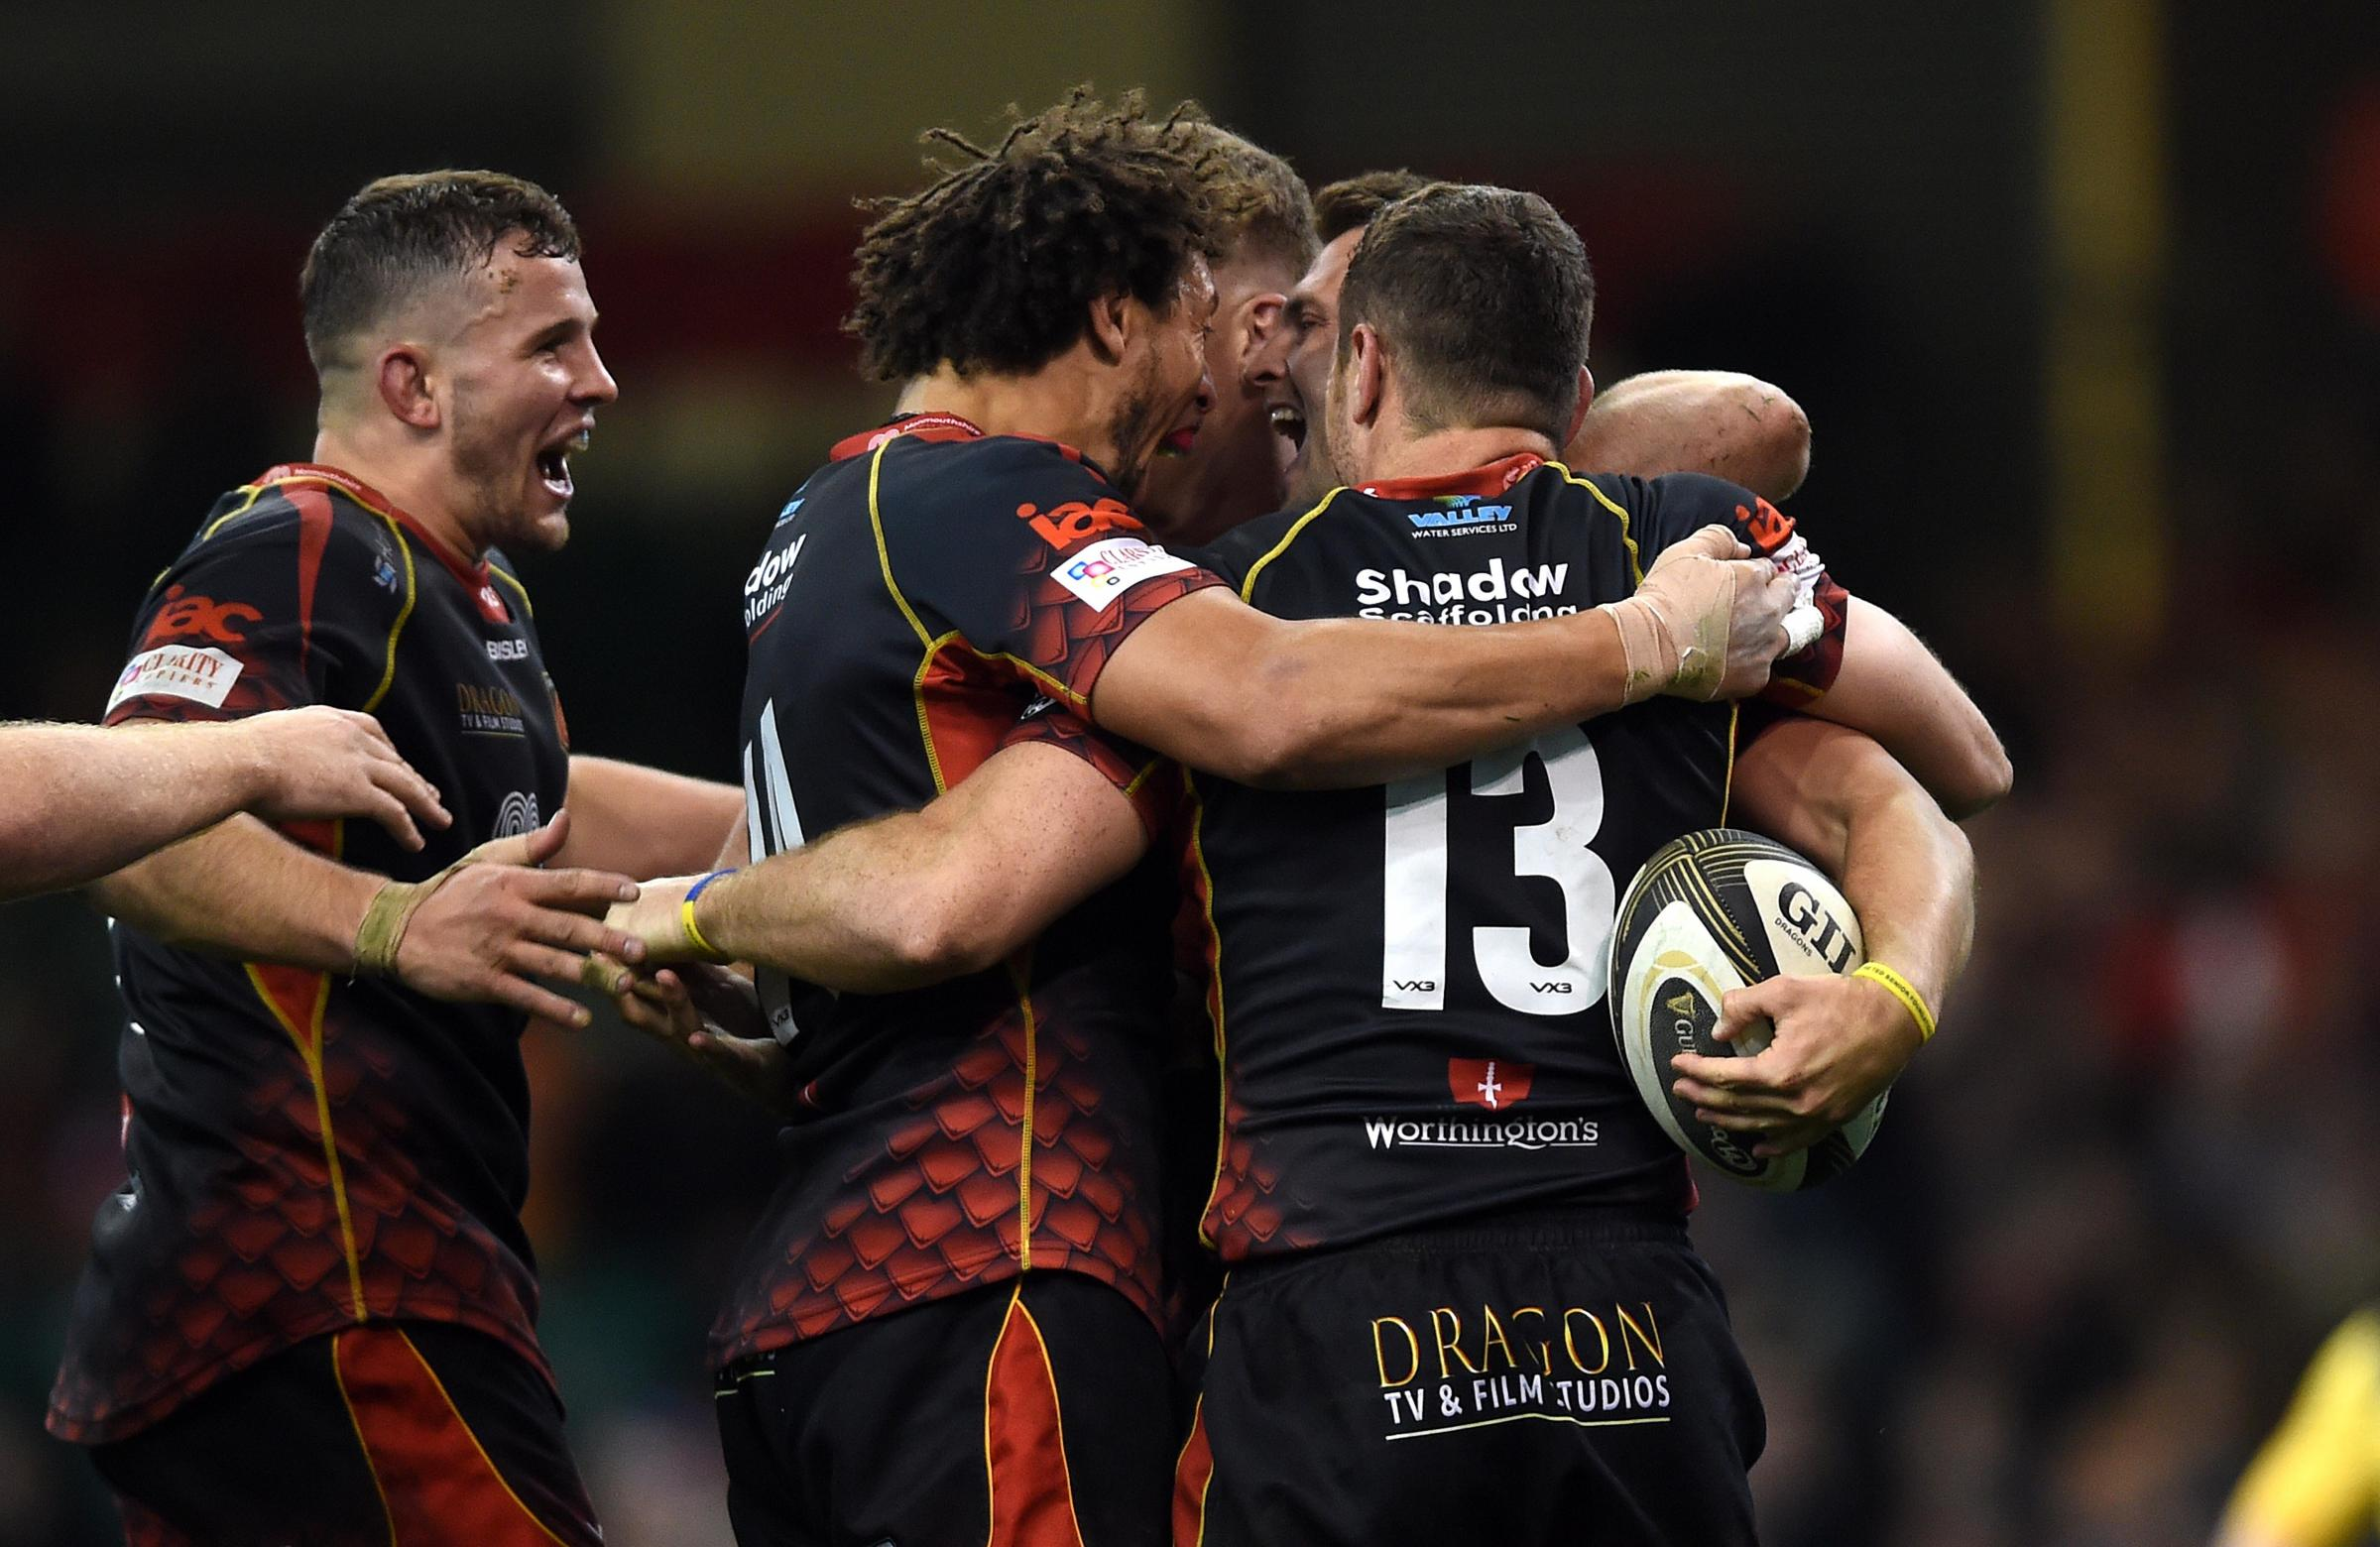 PURE JOY: The Dragons celebrate Josh Lewis' try in the win against the Scarlets